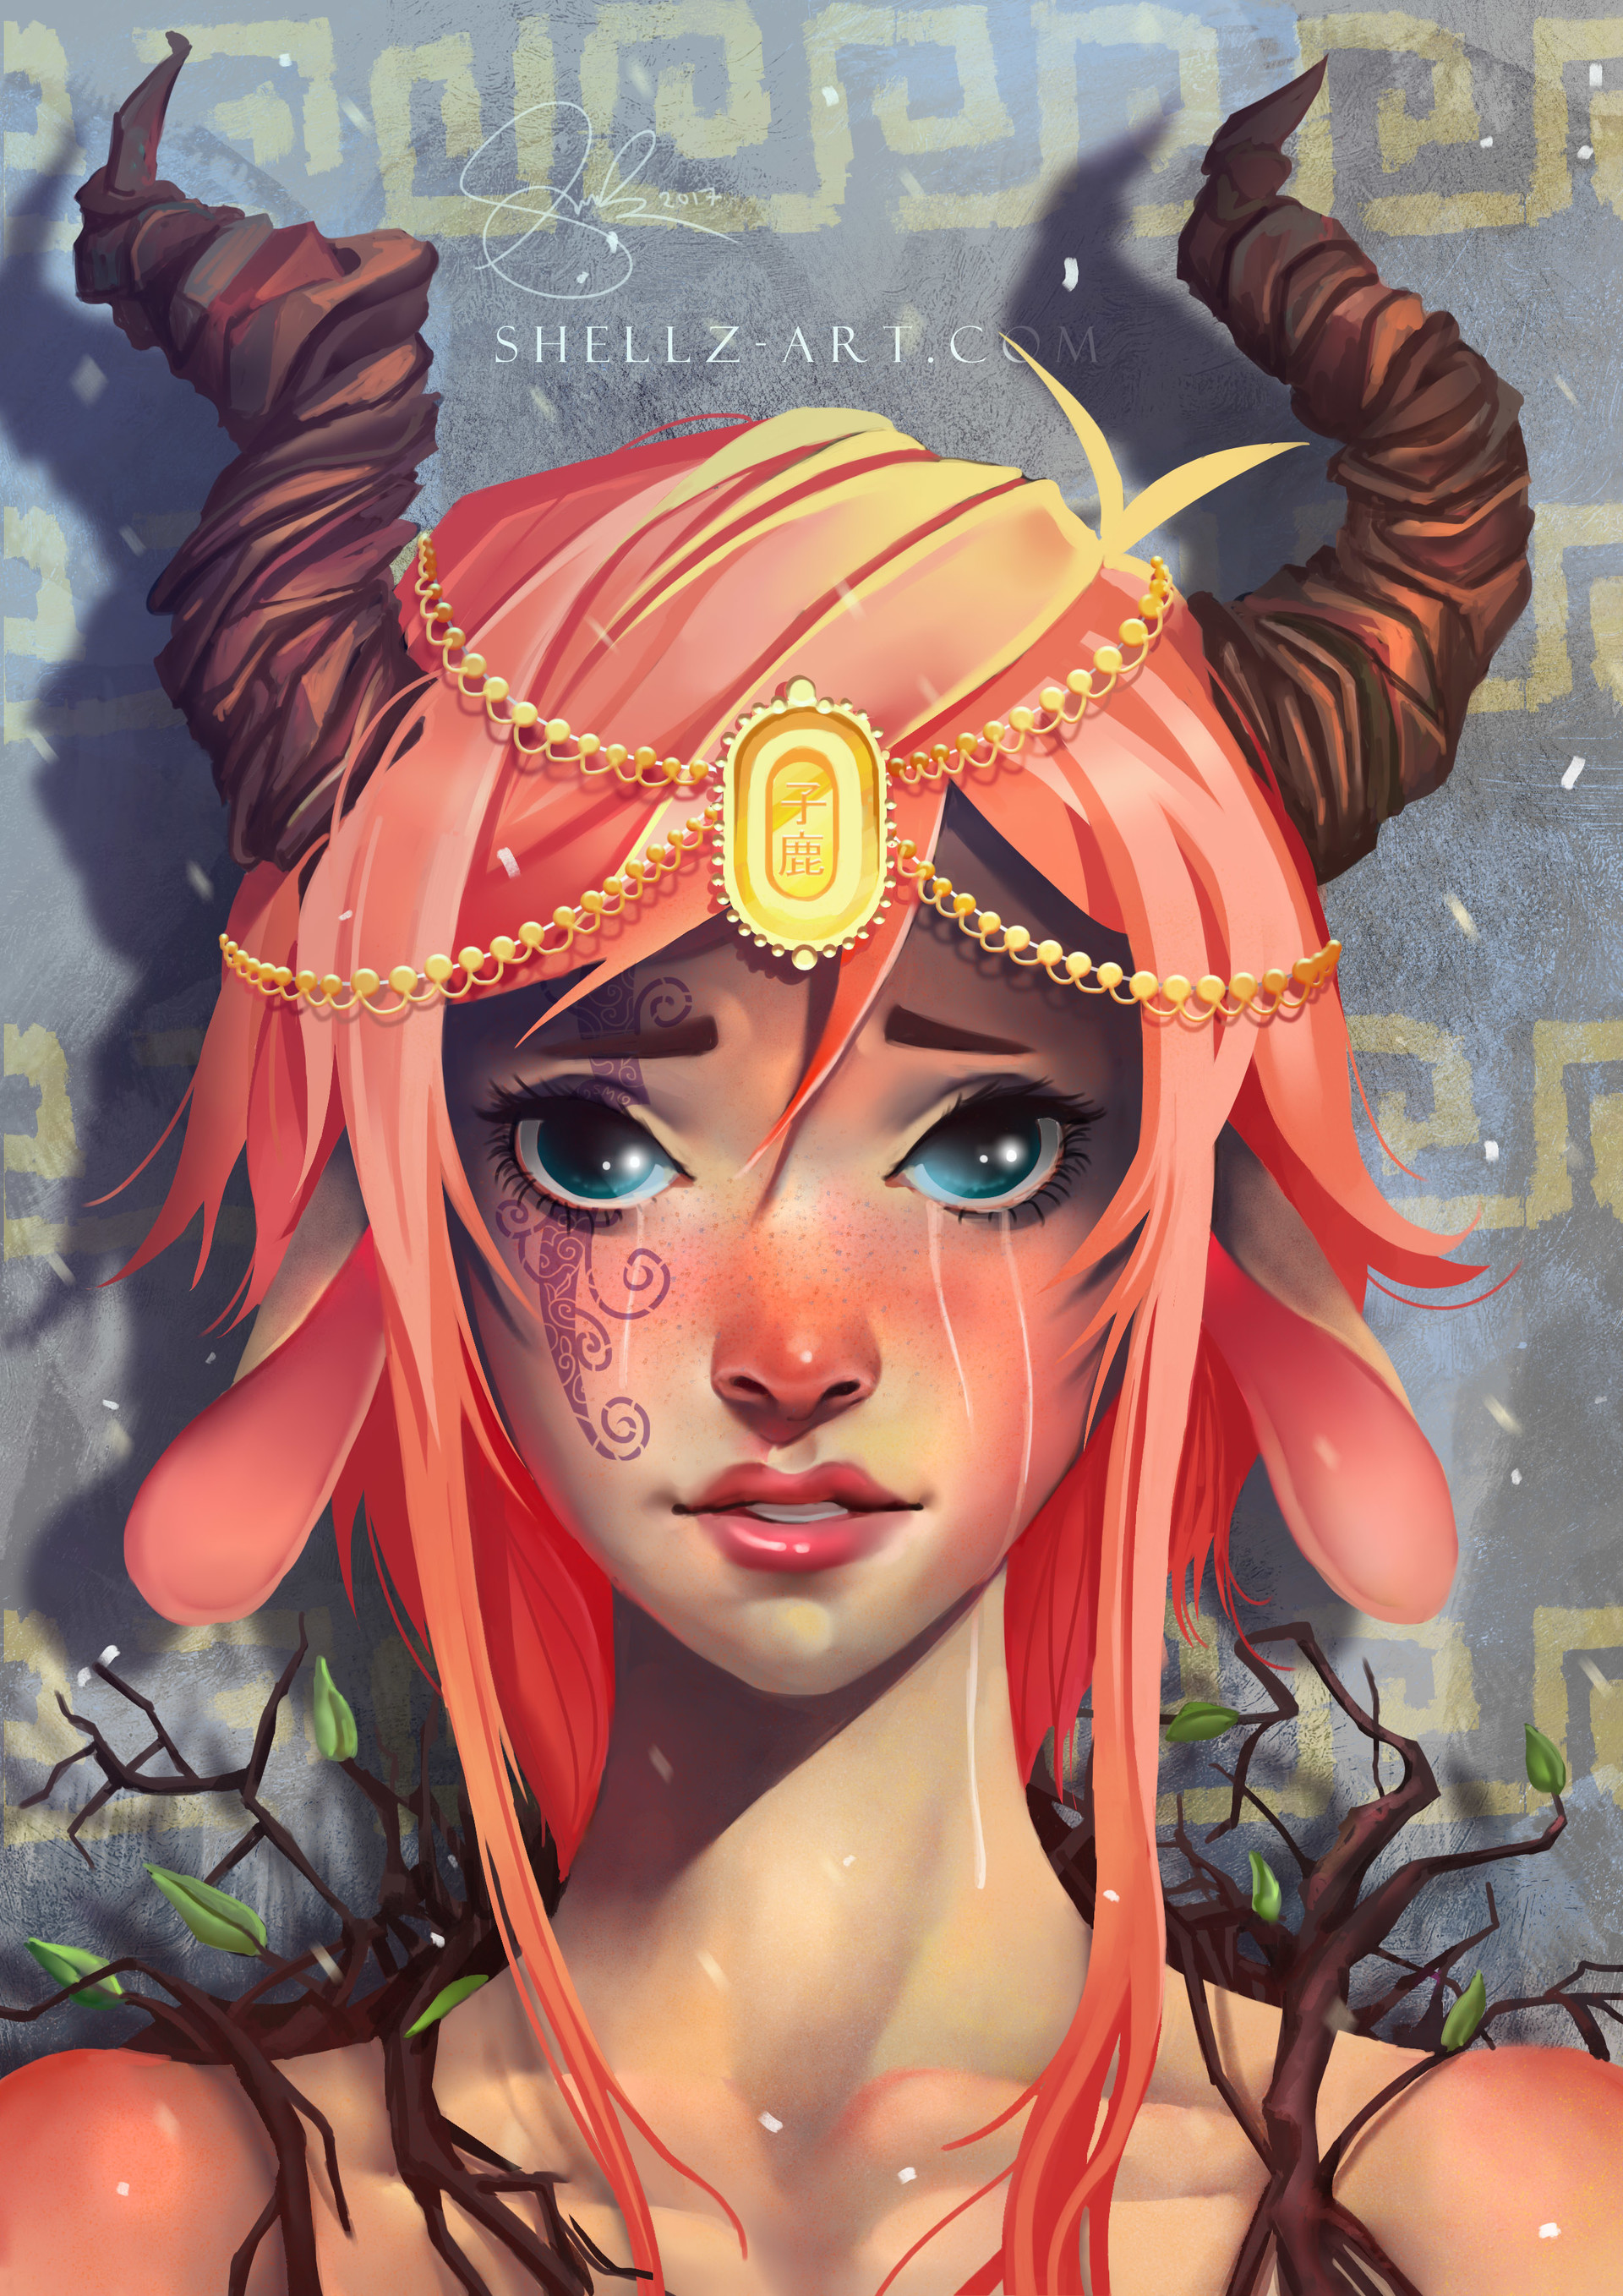 Shellz art fawn princess wip 13